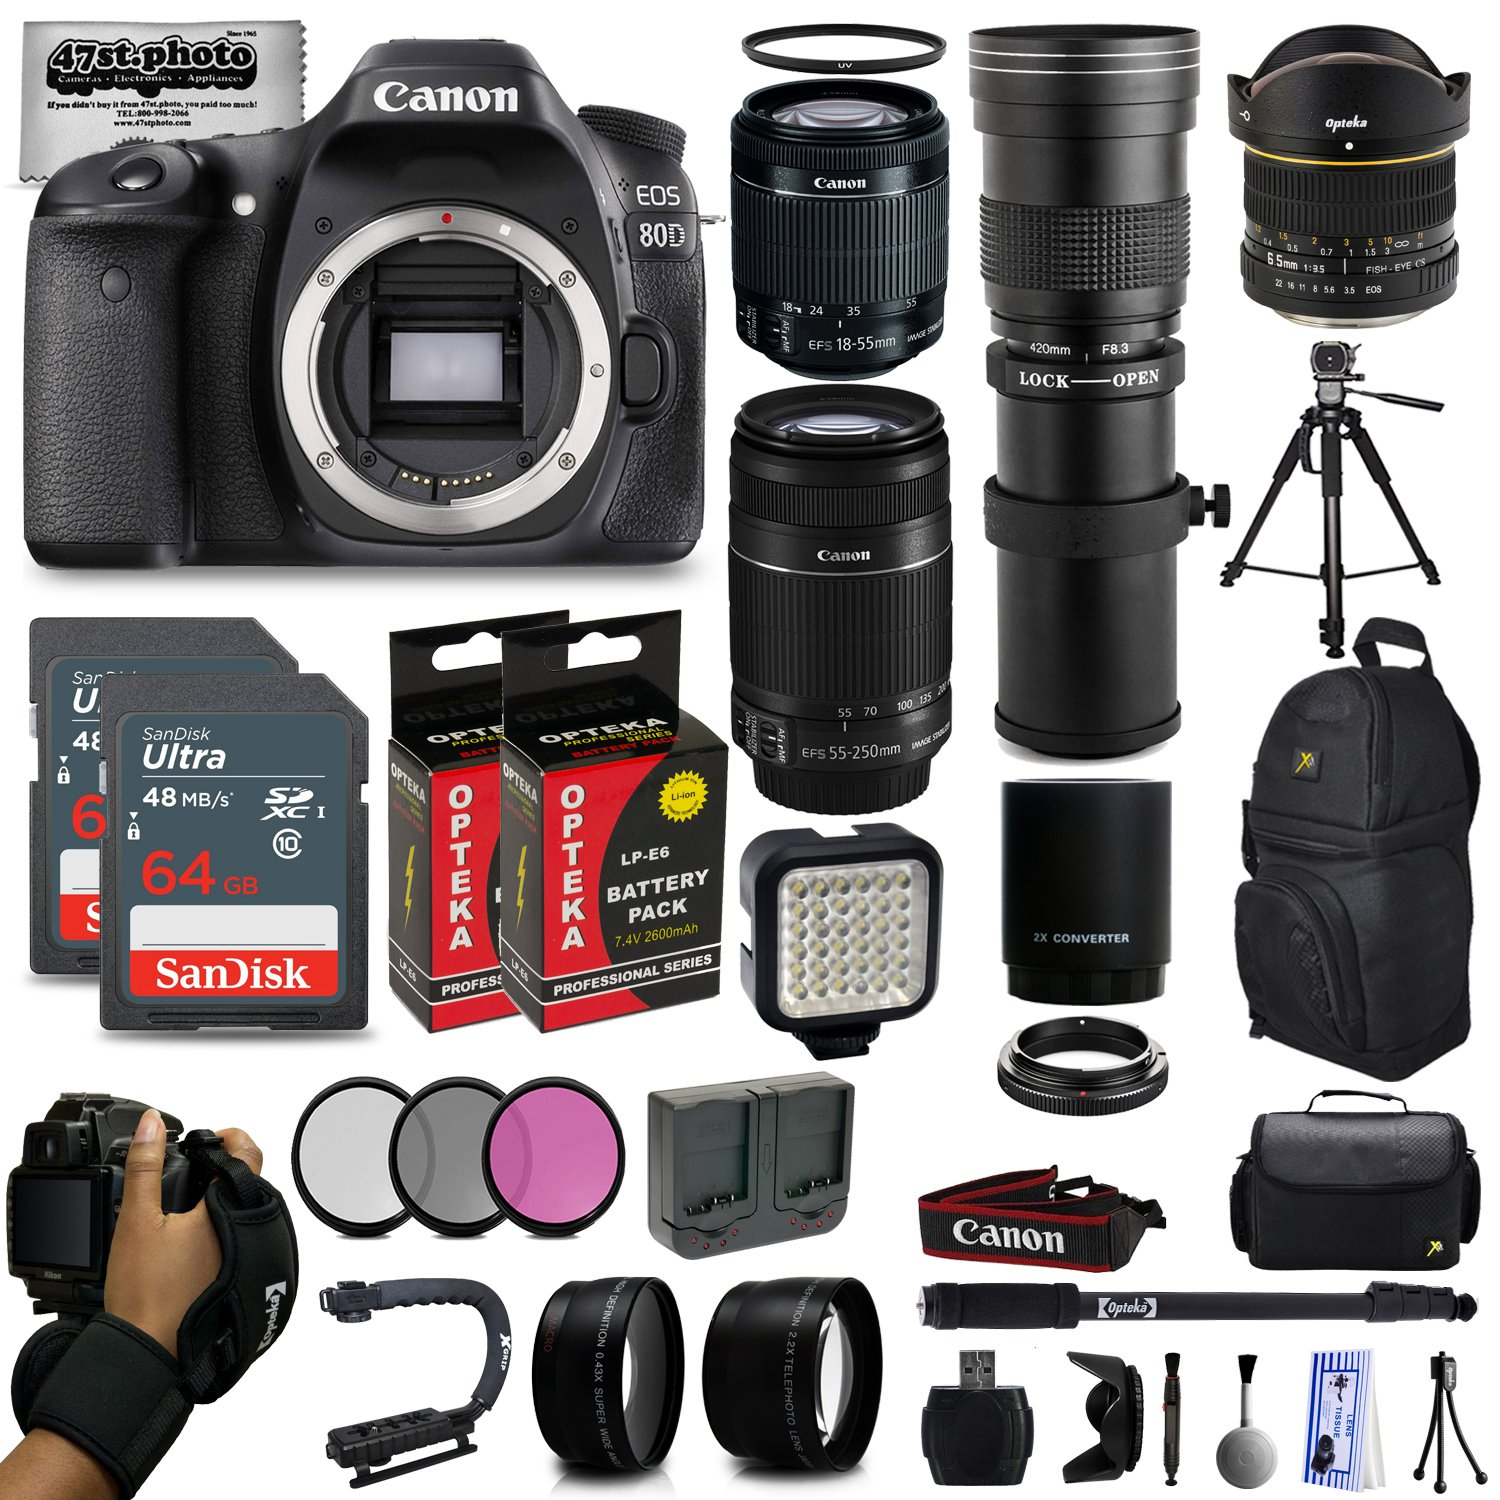 Canon EOS 80D DSLR Digital Camera with EF-S 18-55mm IS STM + 55-250mm STM + 6.5mm Fisheye + 420-800mm Telephoto Lens + 128GB Memory + 2 Extra Batteries + Wide Angle + Telephoto + Backpack + Lens Kit 47th Street Photo